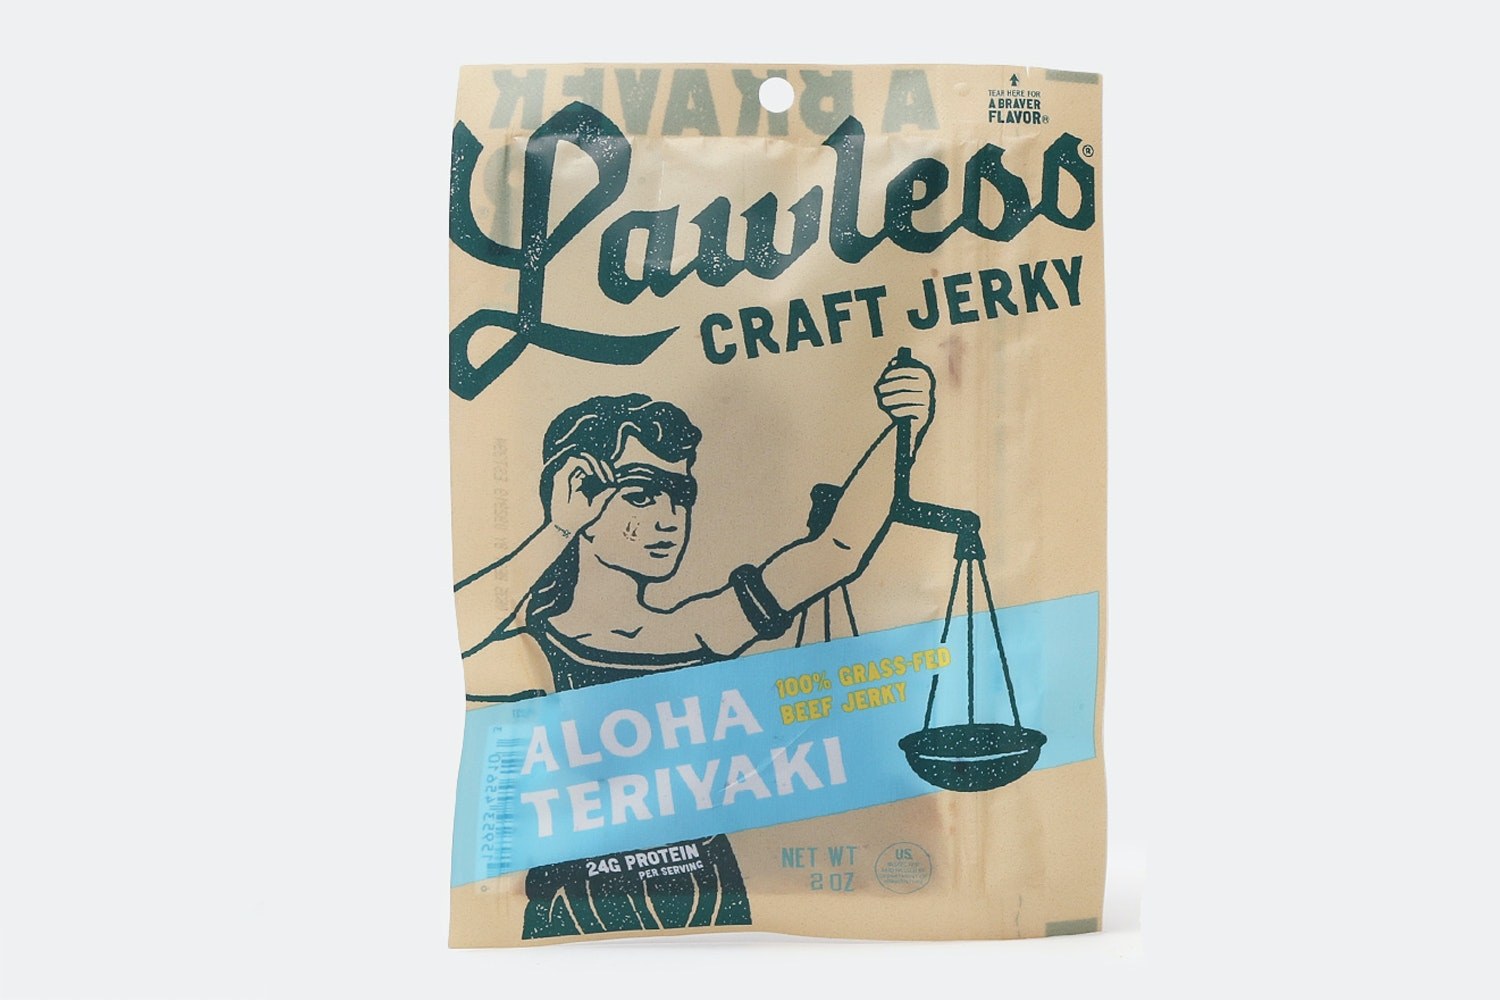 Lawless Craft Jerky (3-Pack)